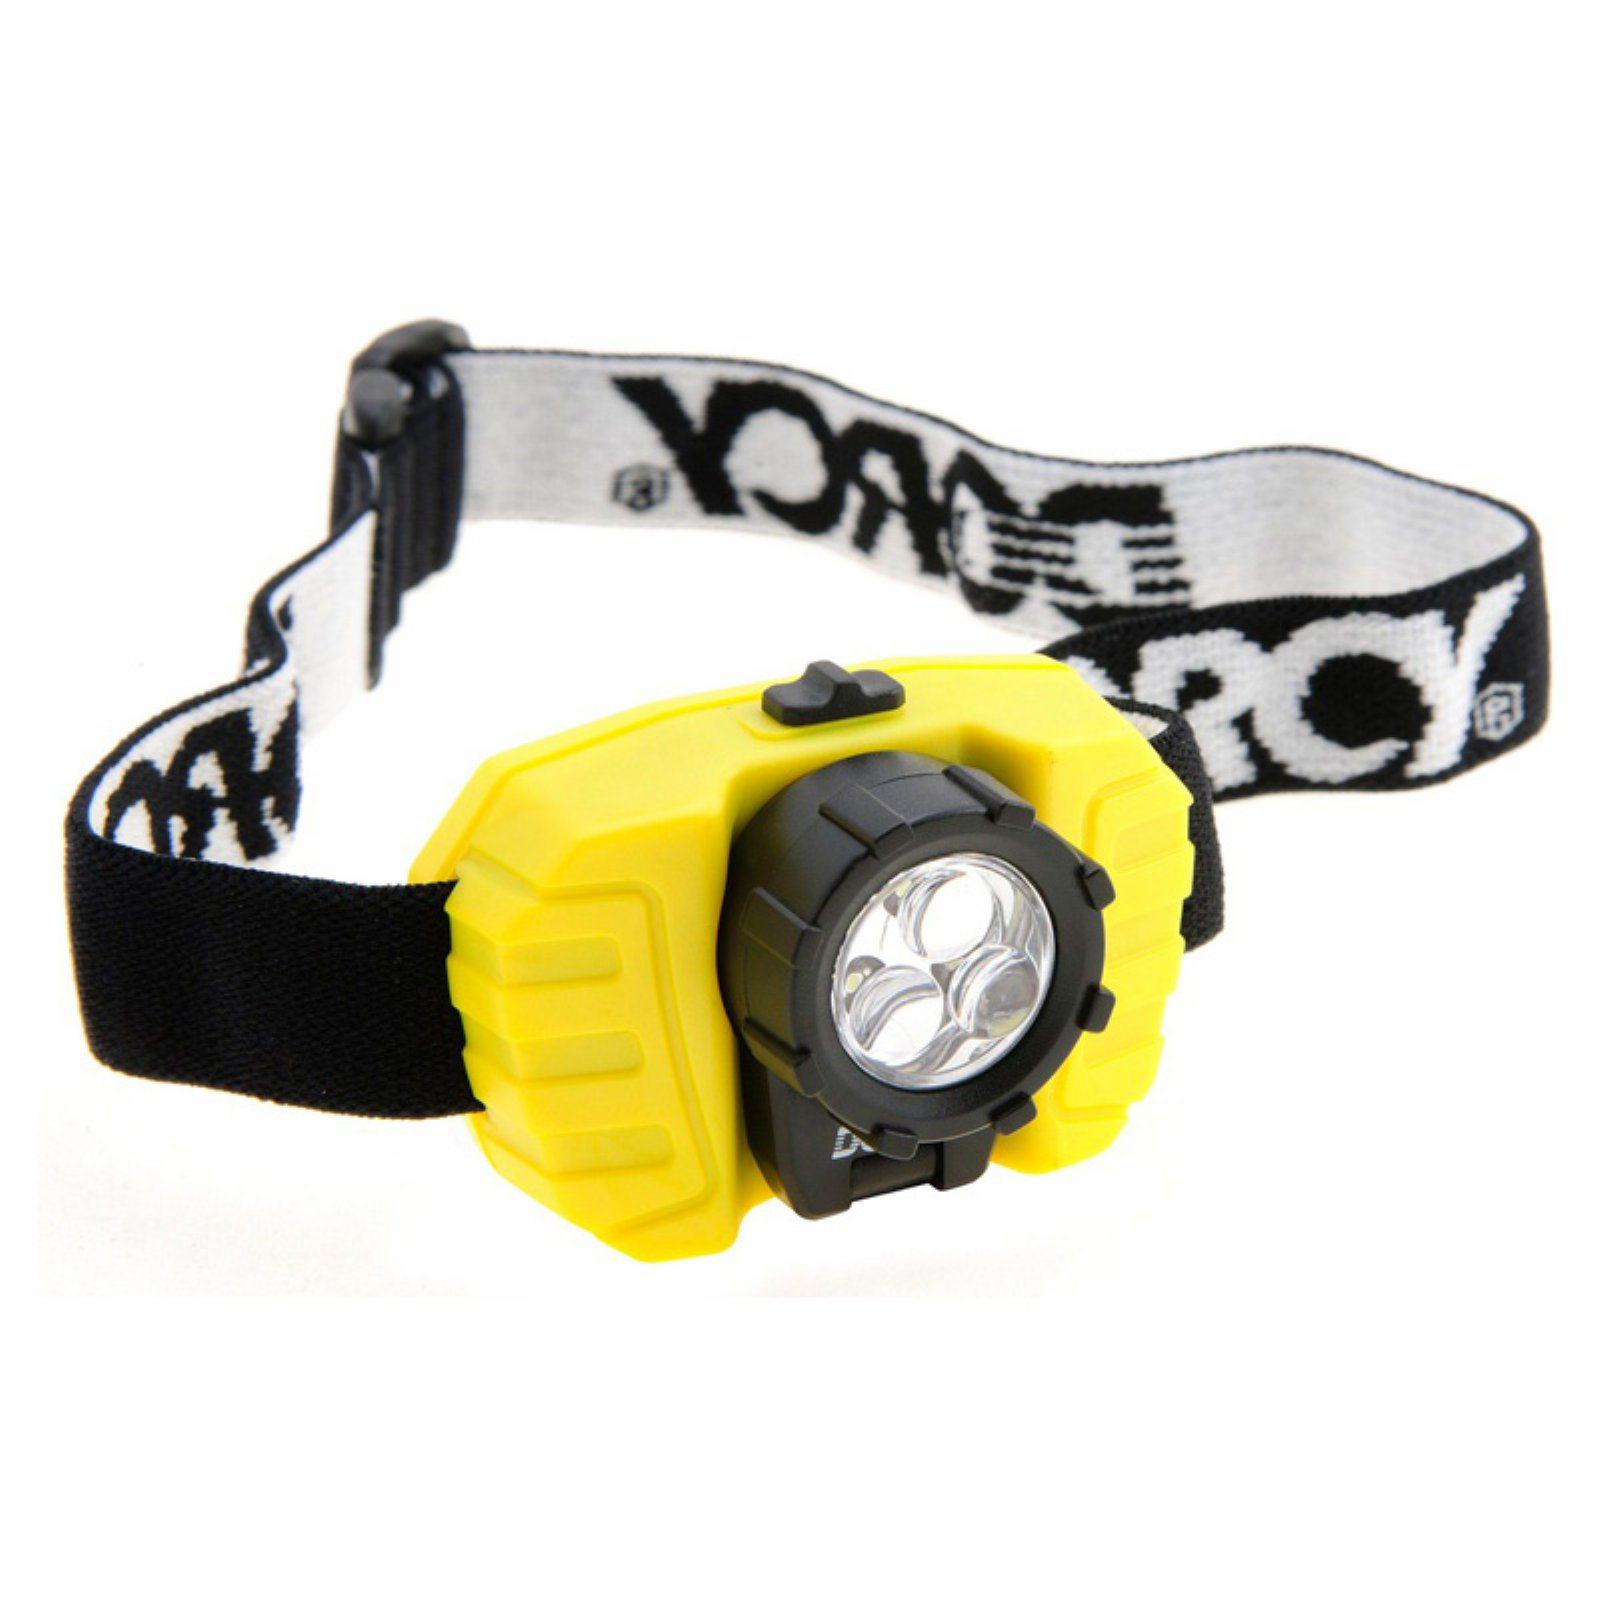 Dorcy 3-LED Headlamp